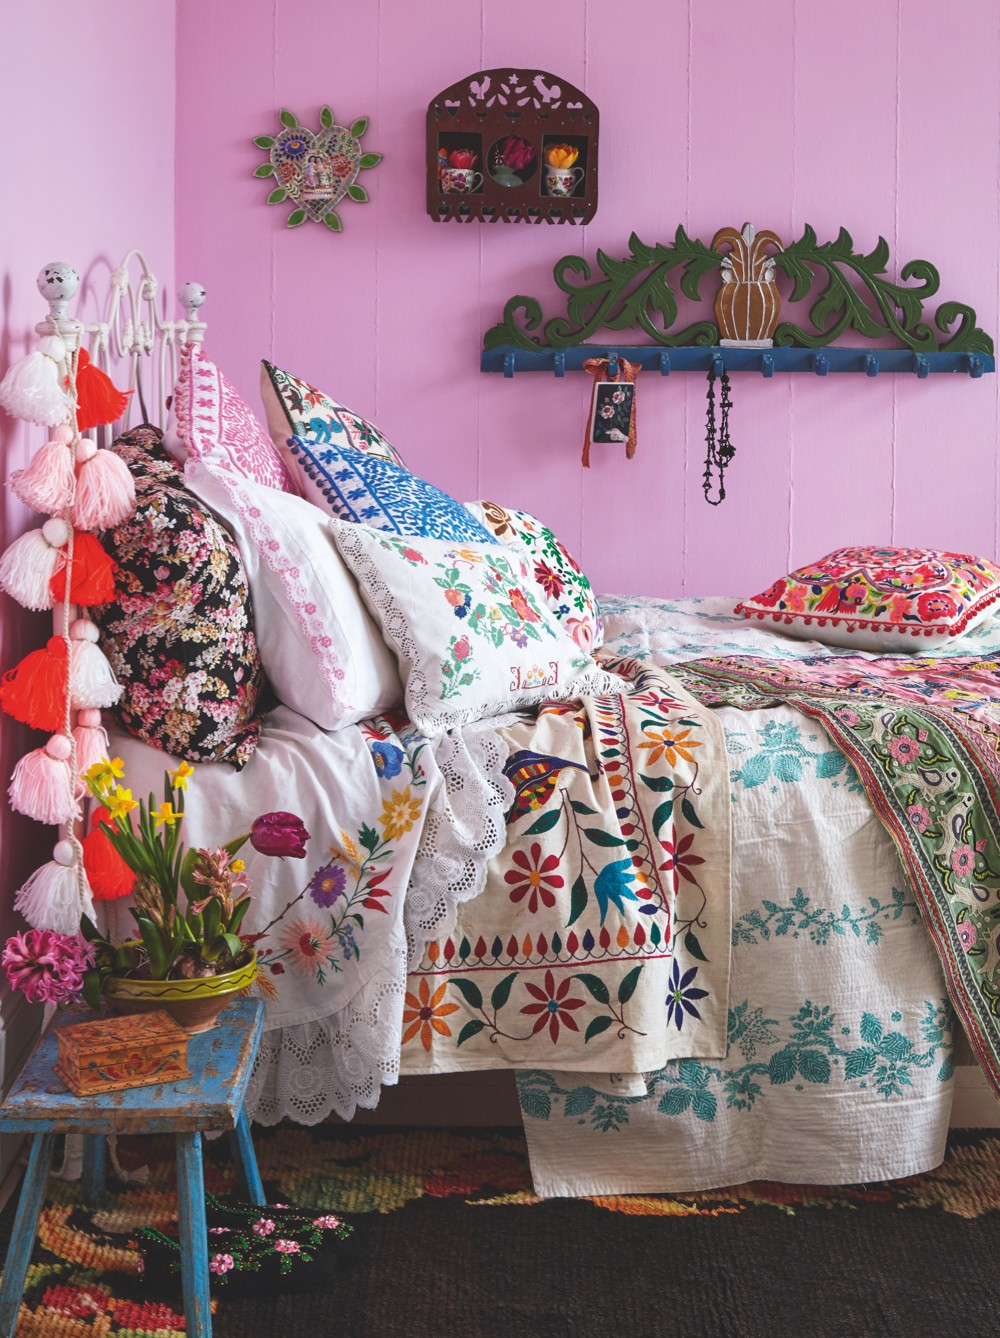 A folk-style bedroom layered with antique and vintage quilts and throws